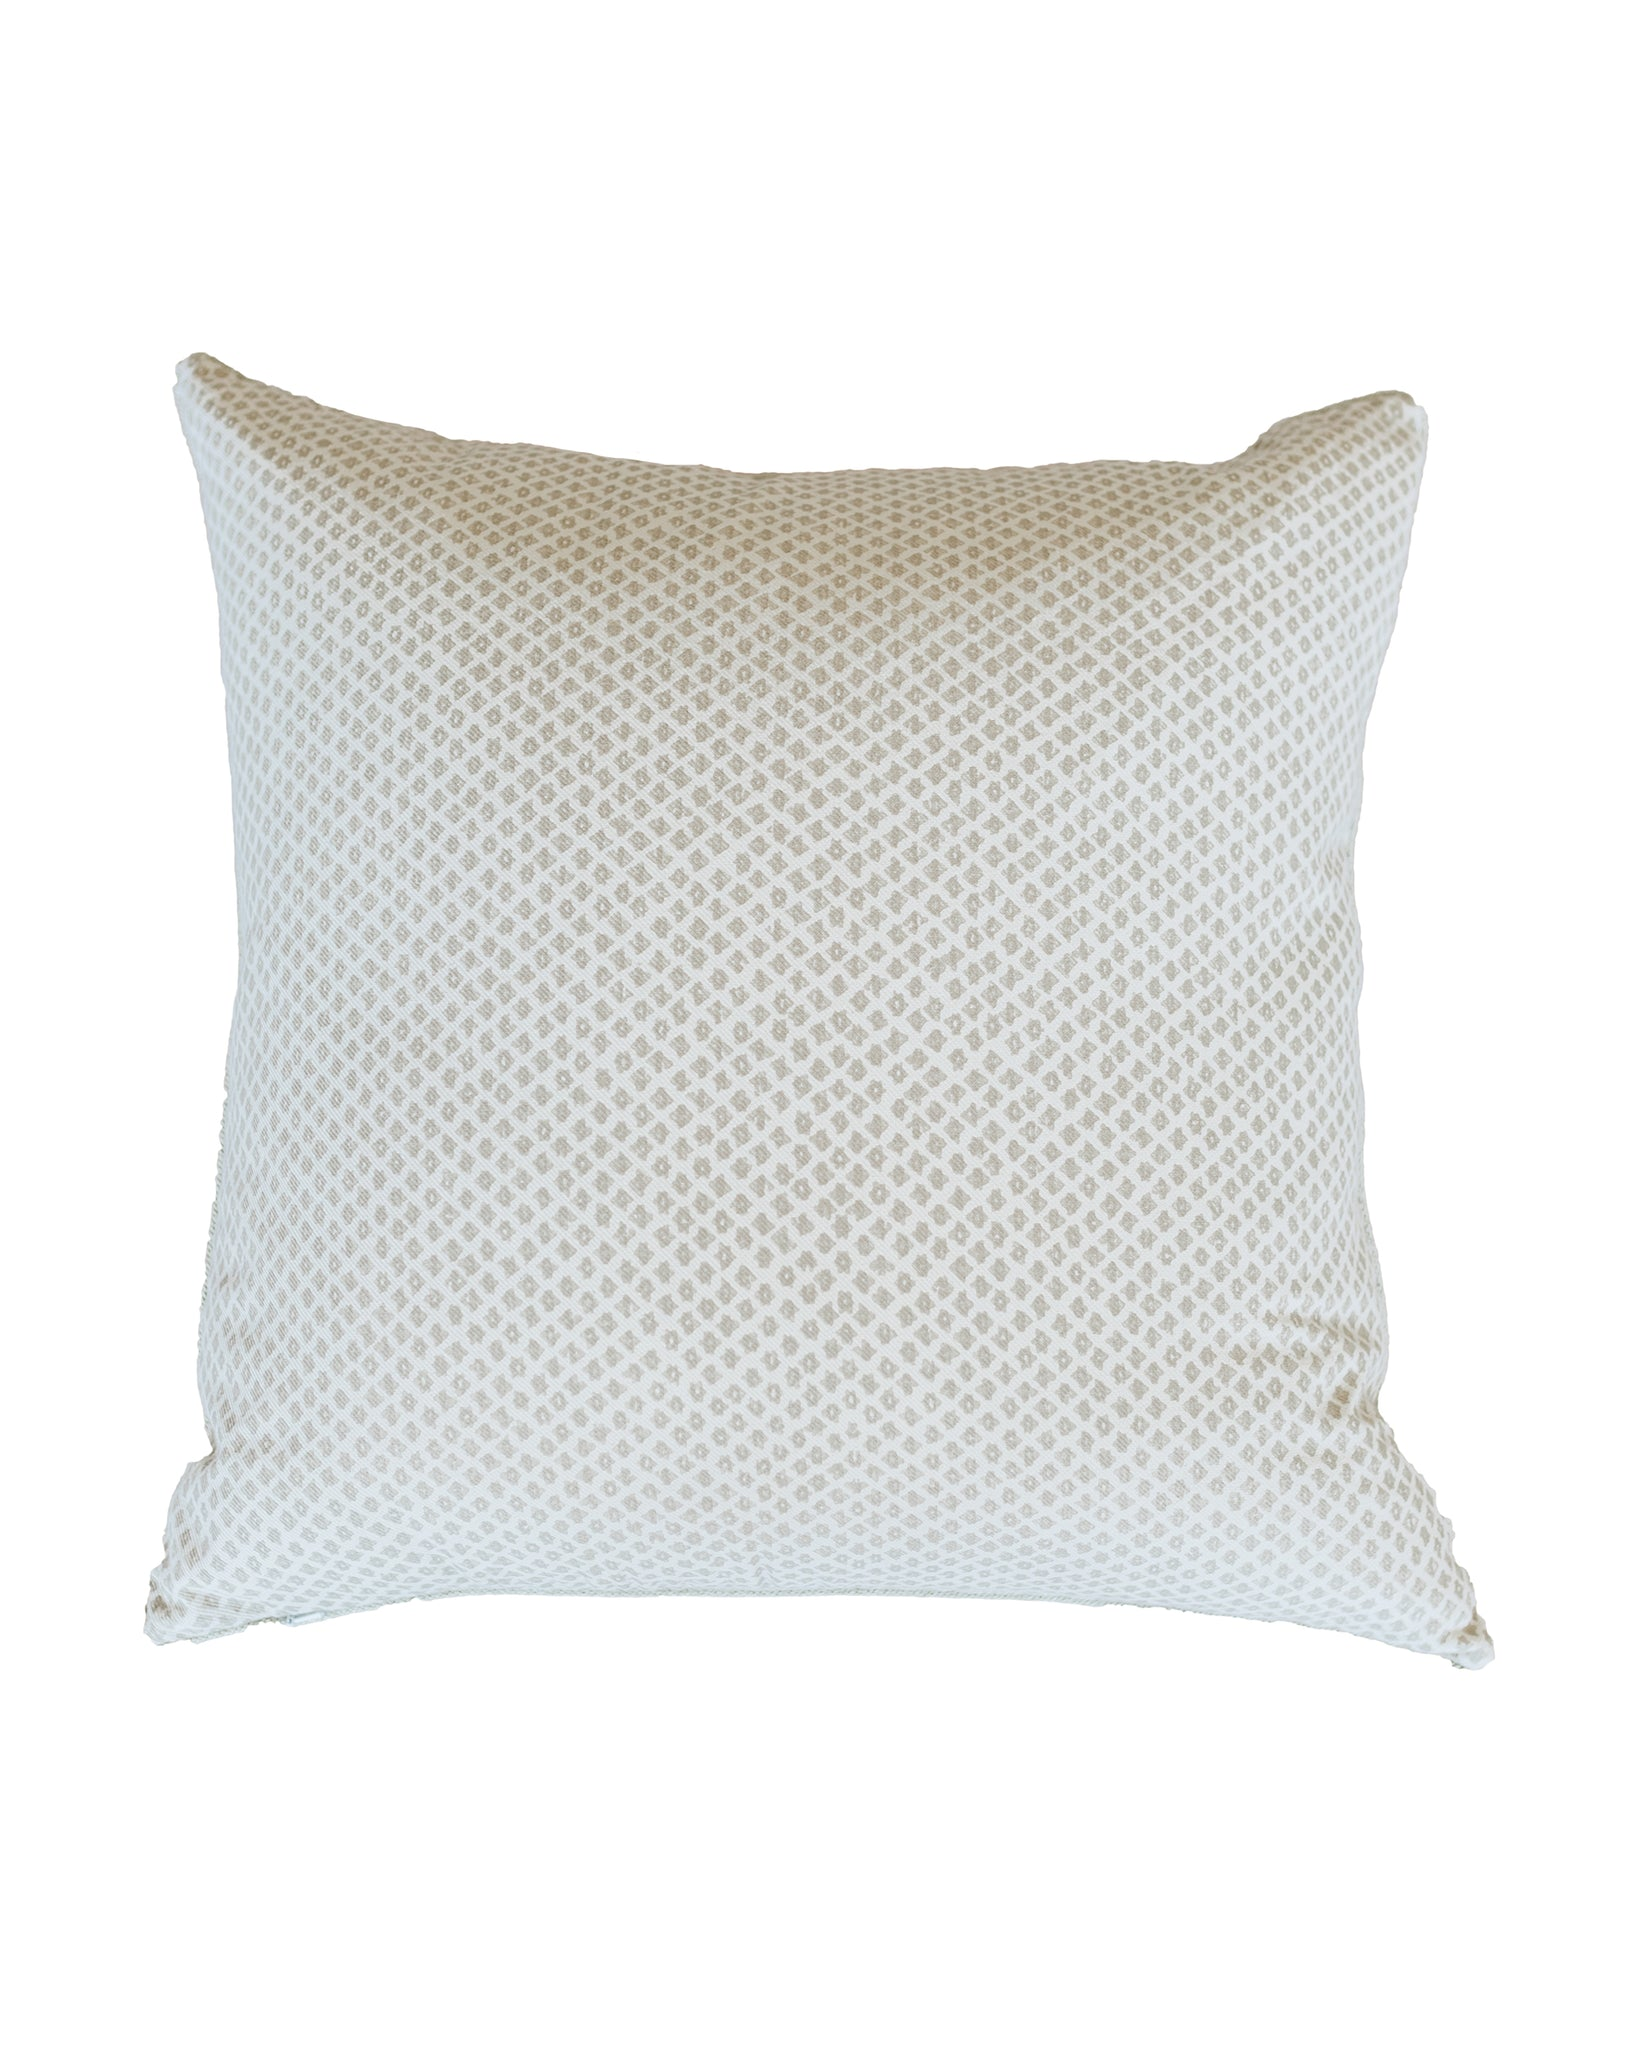 Marden Tan Pillow - Amy Berry Home